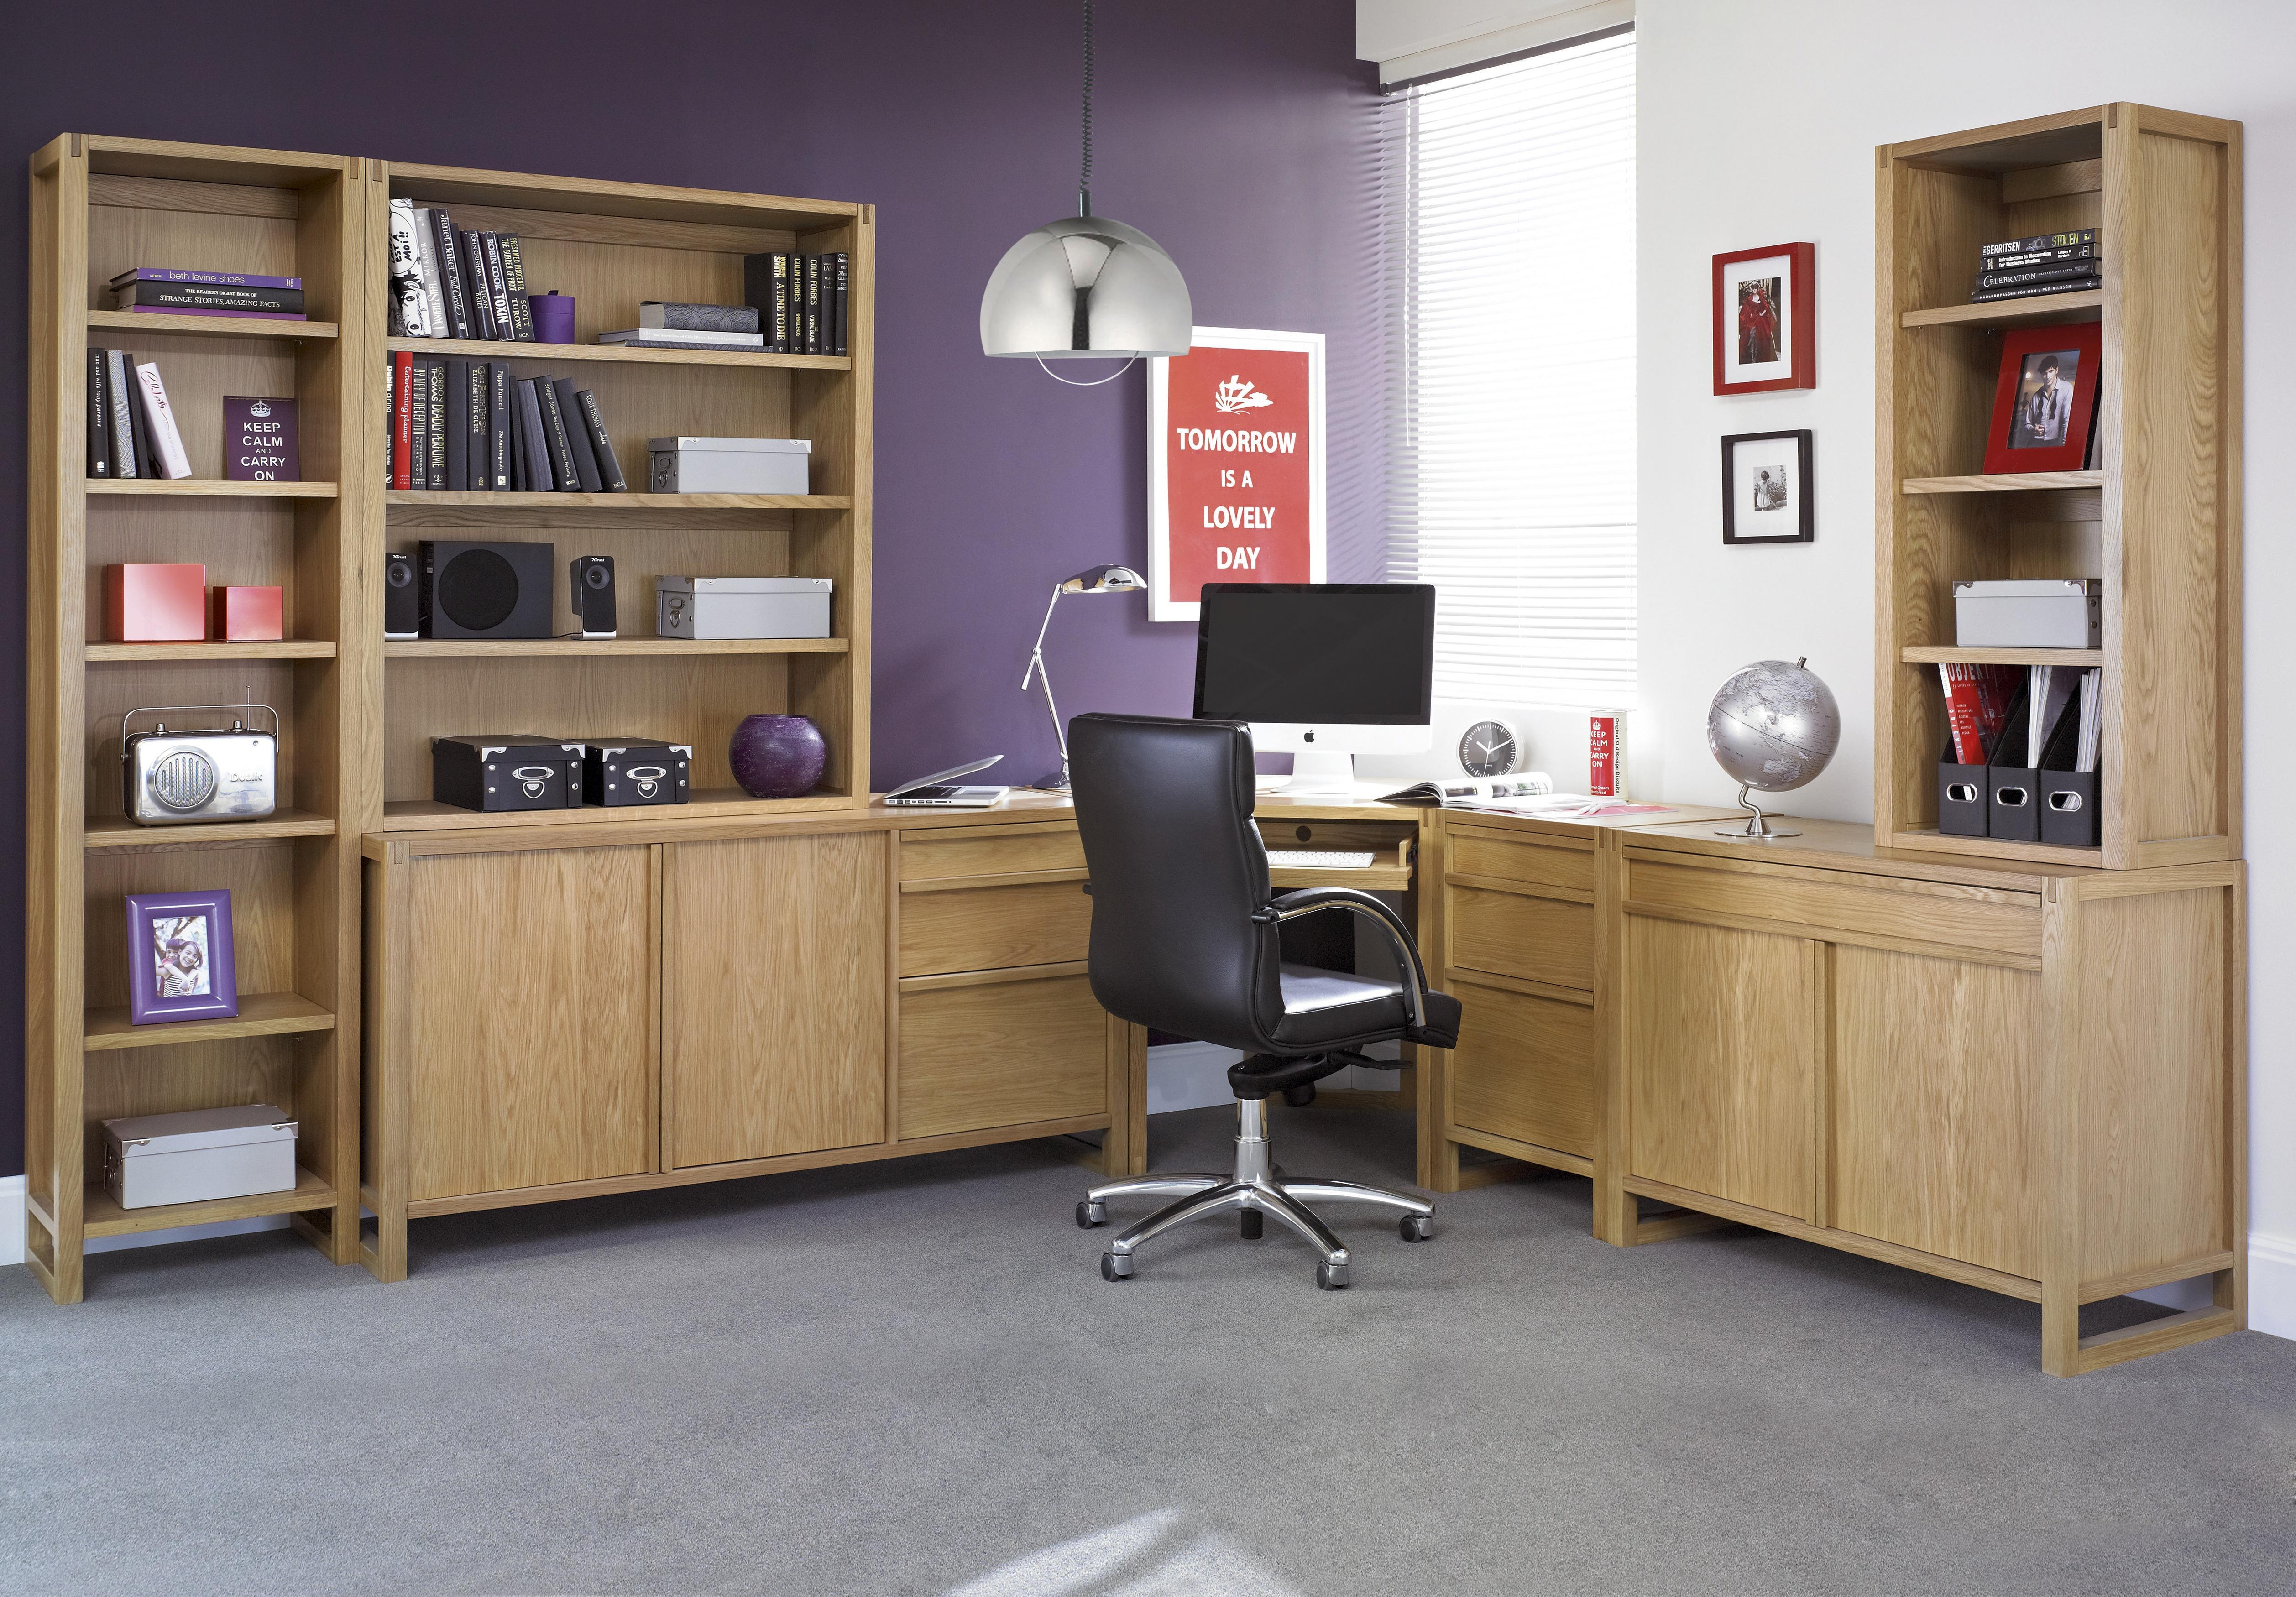 Groovy How To Set Up An Ergonomic Workspace At Home Furniture Village Largest Home Design Picture Inspirations Pitcheantrous